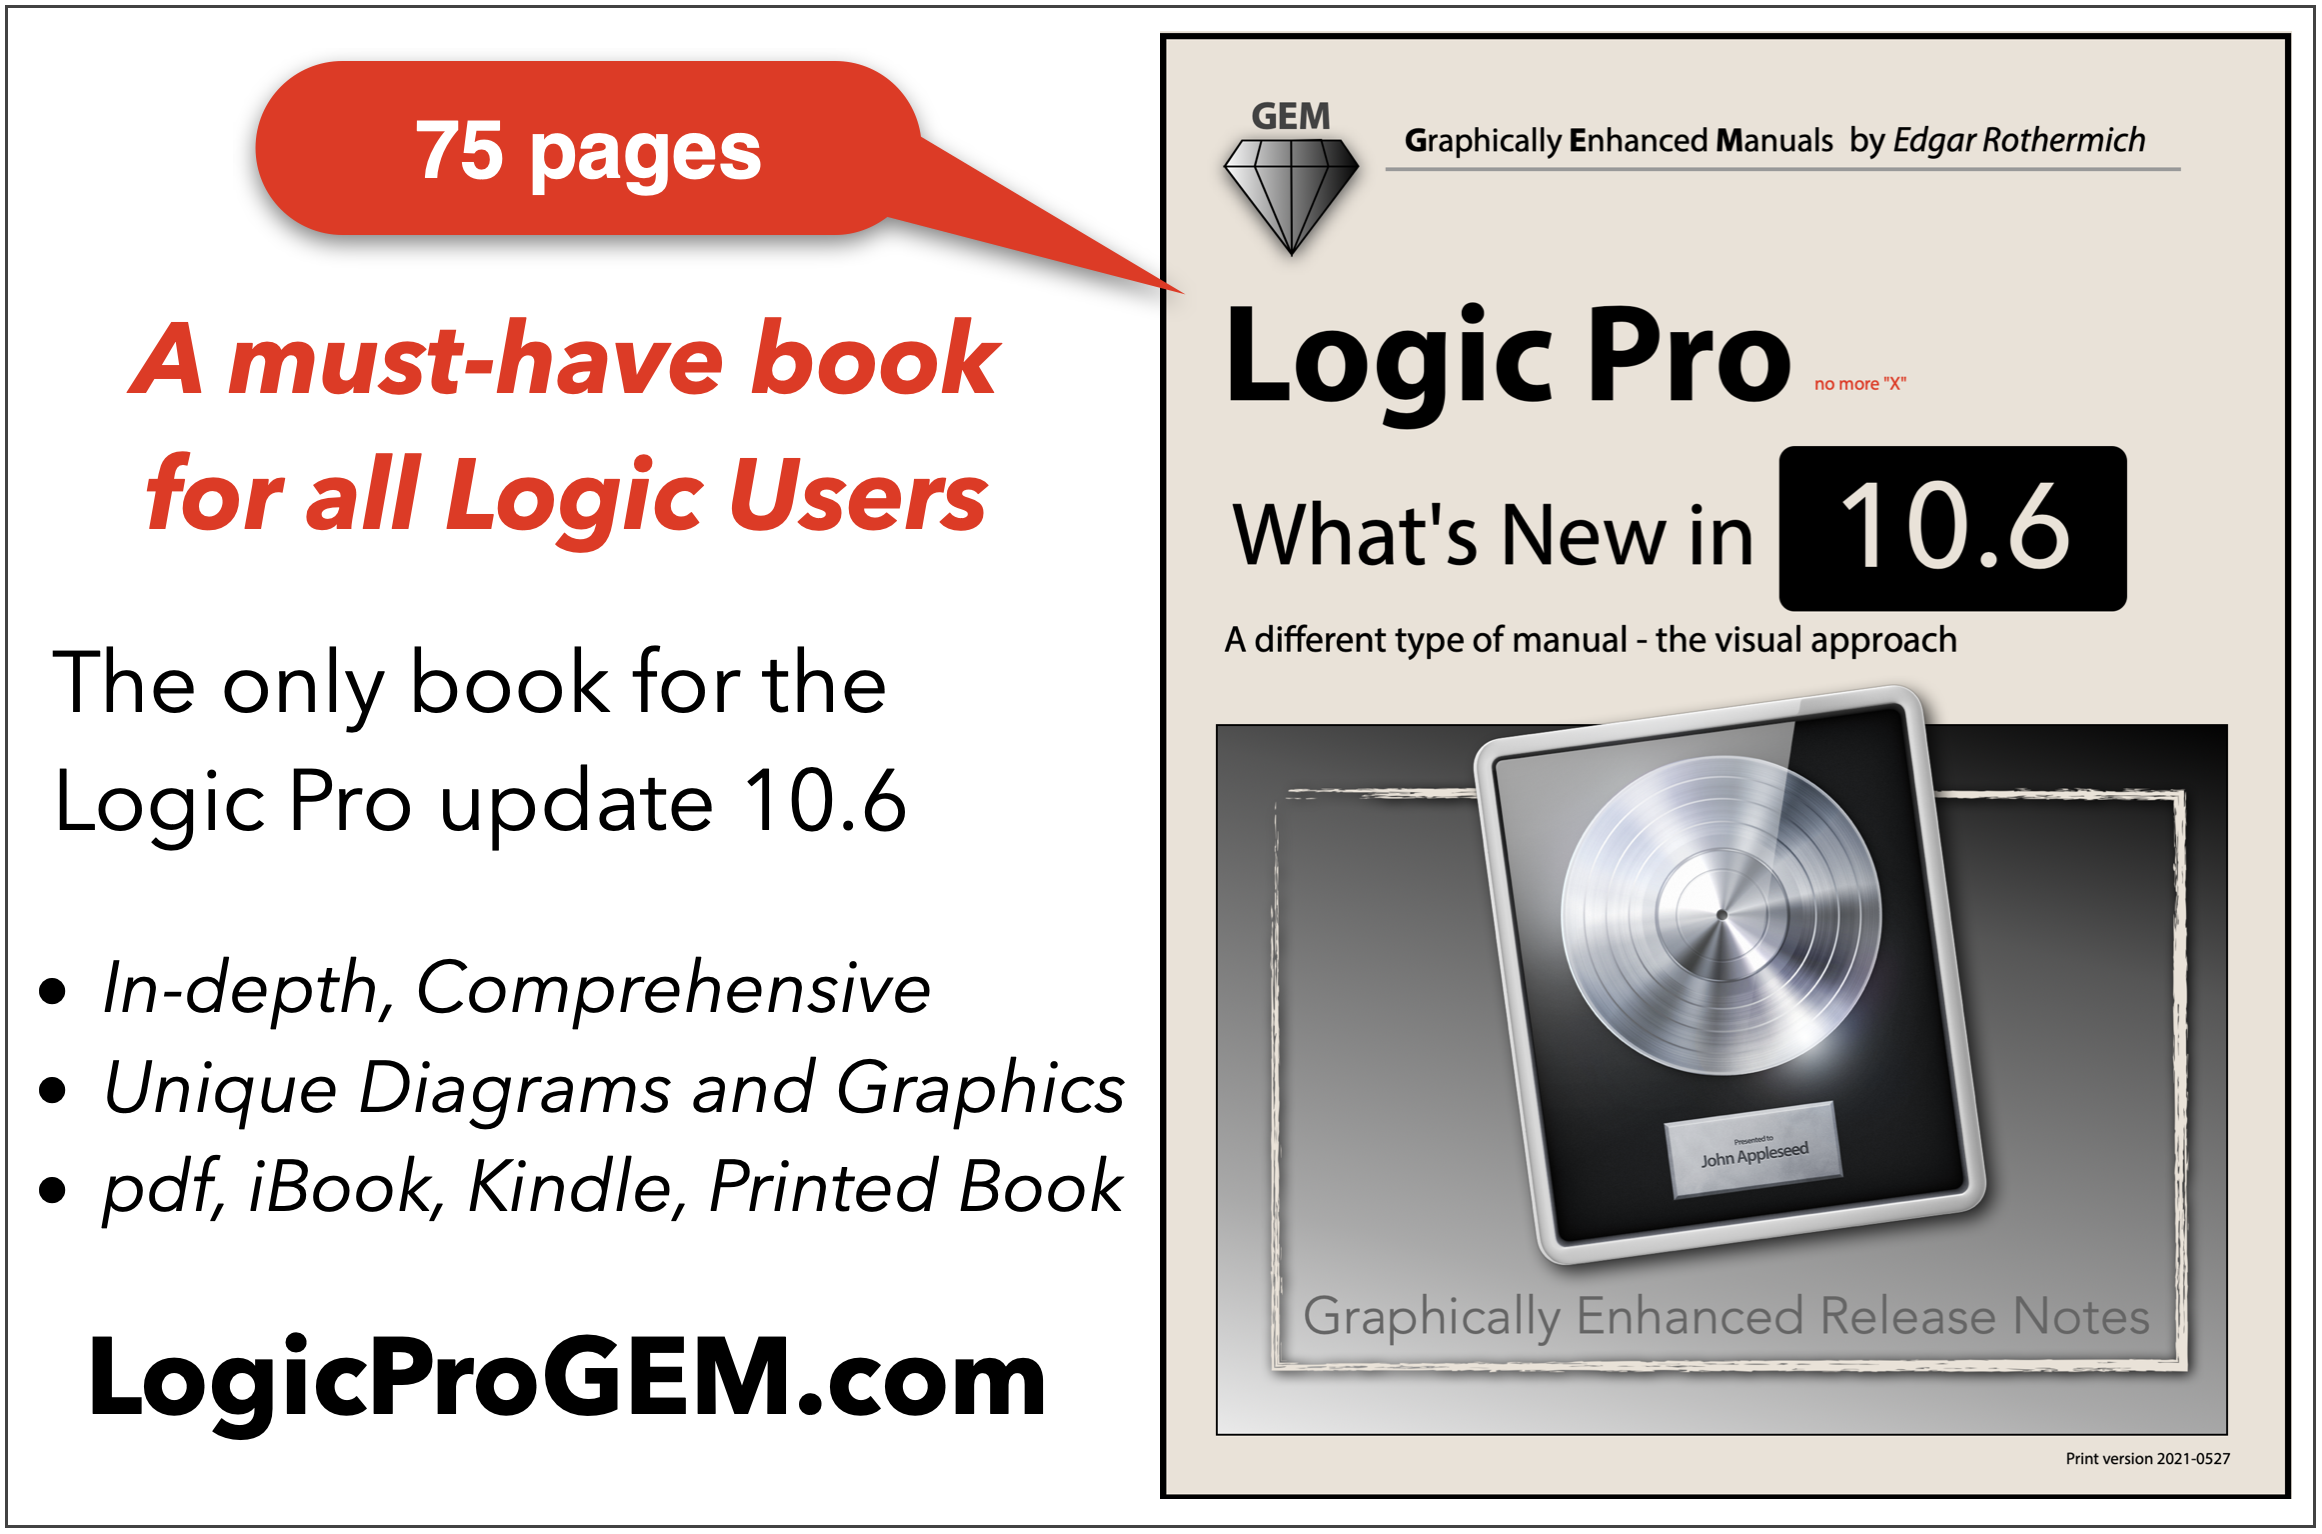 Logic Pro - What's New in 10.6.png